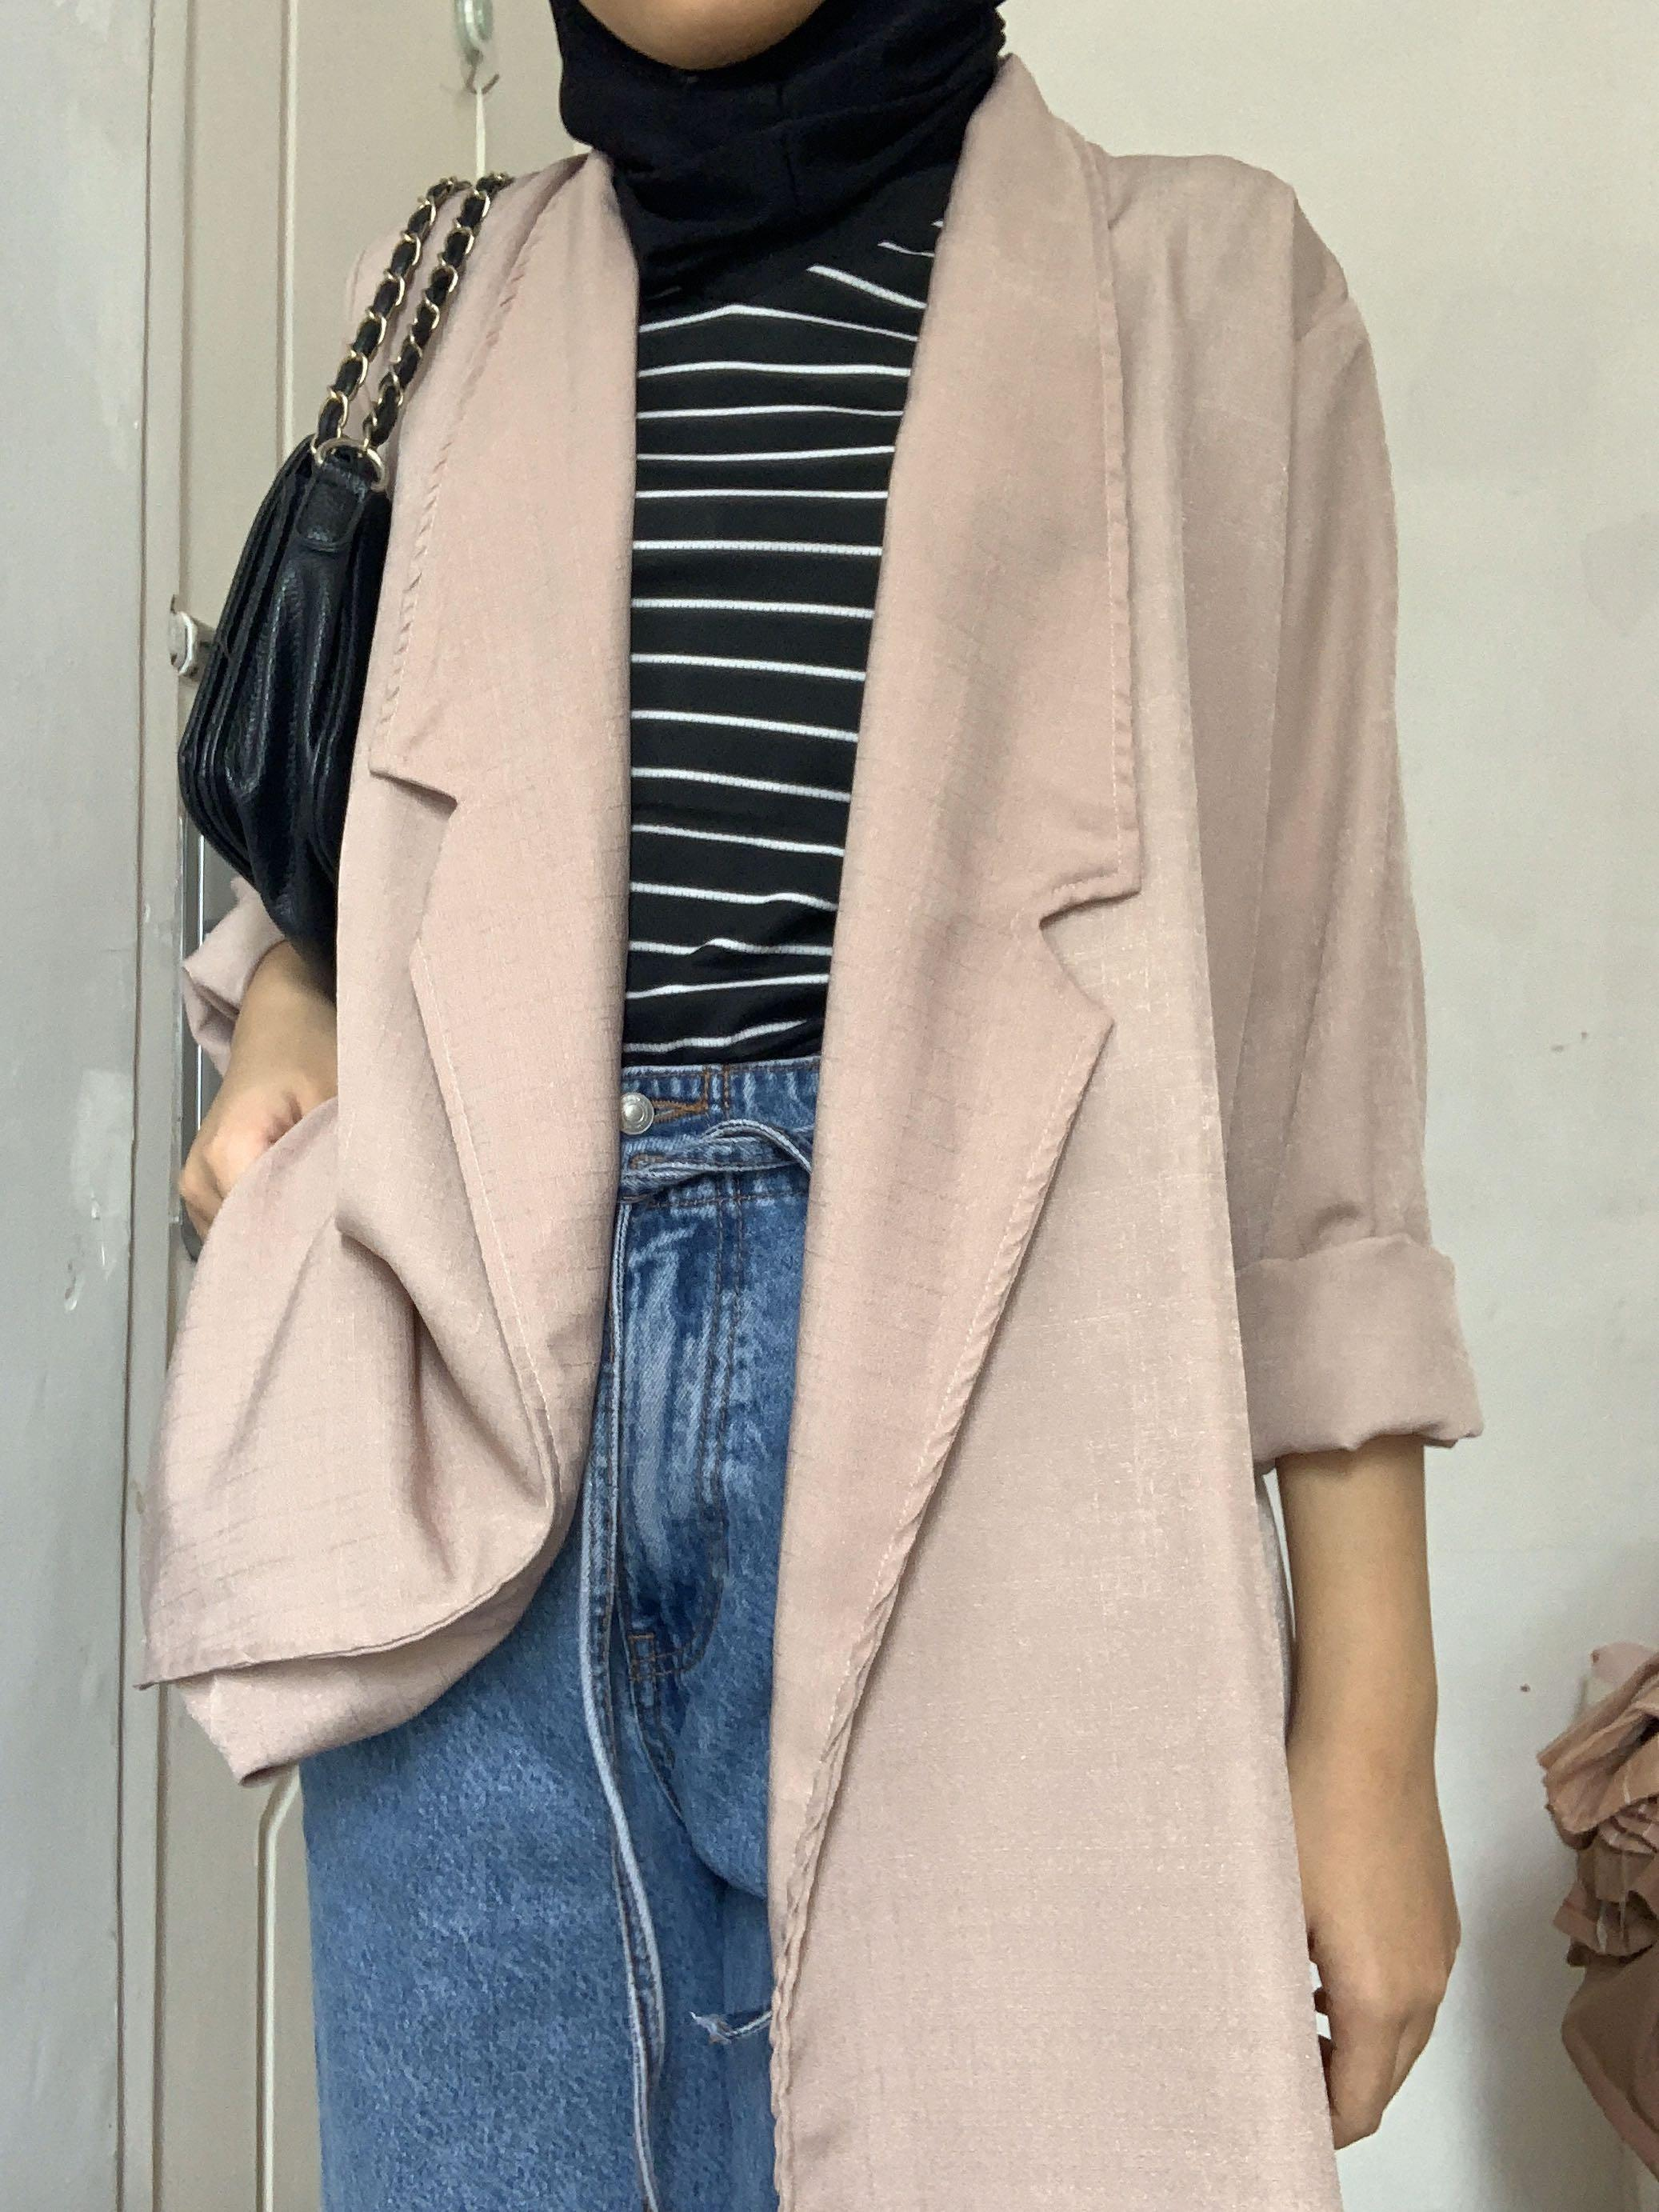 Outer soft pink